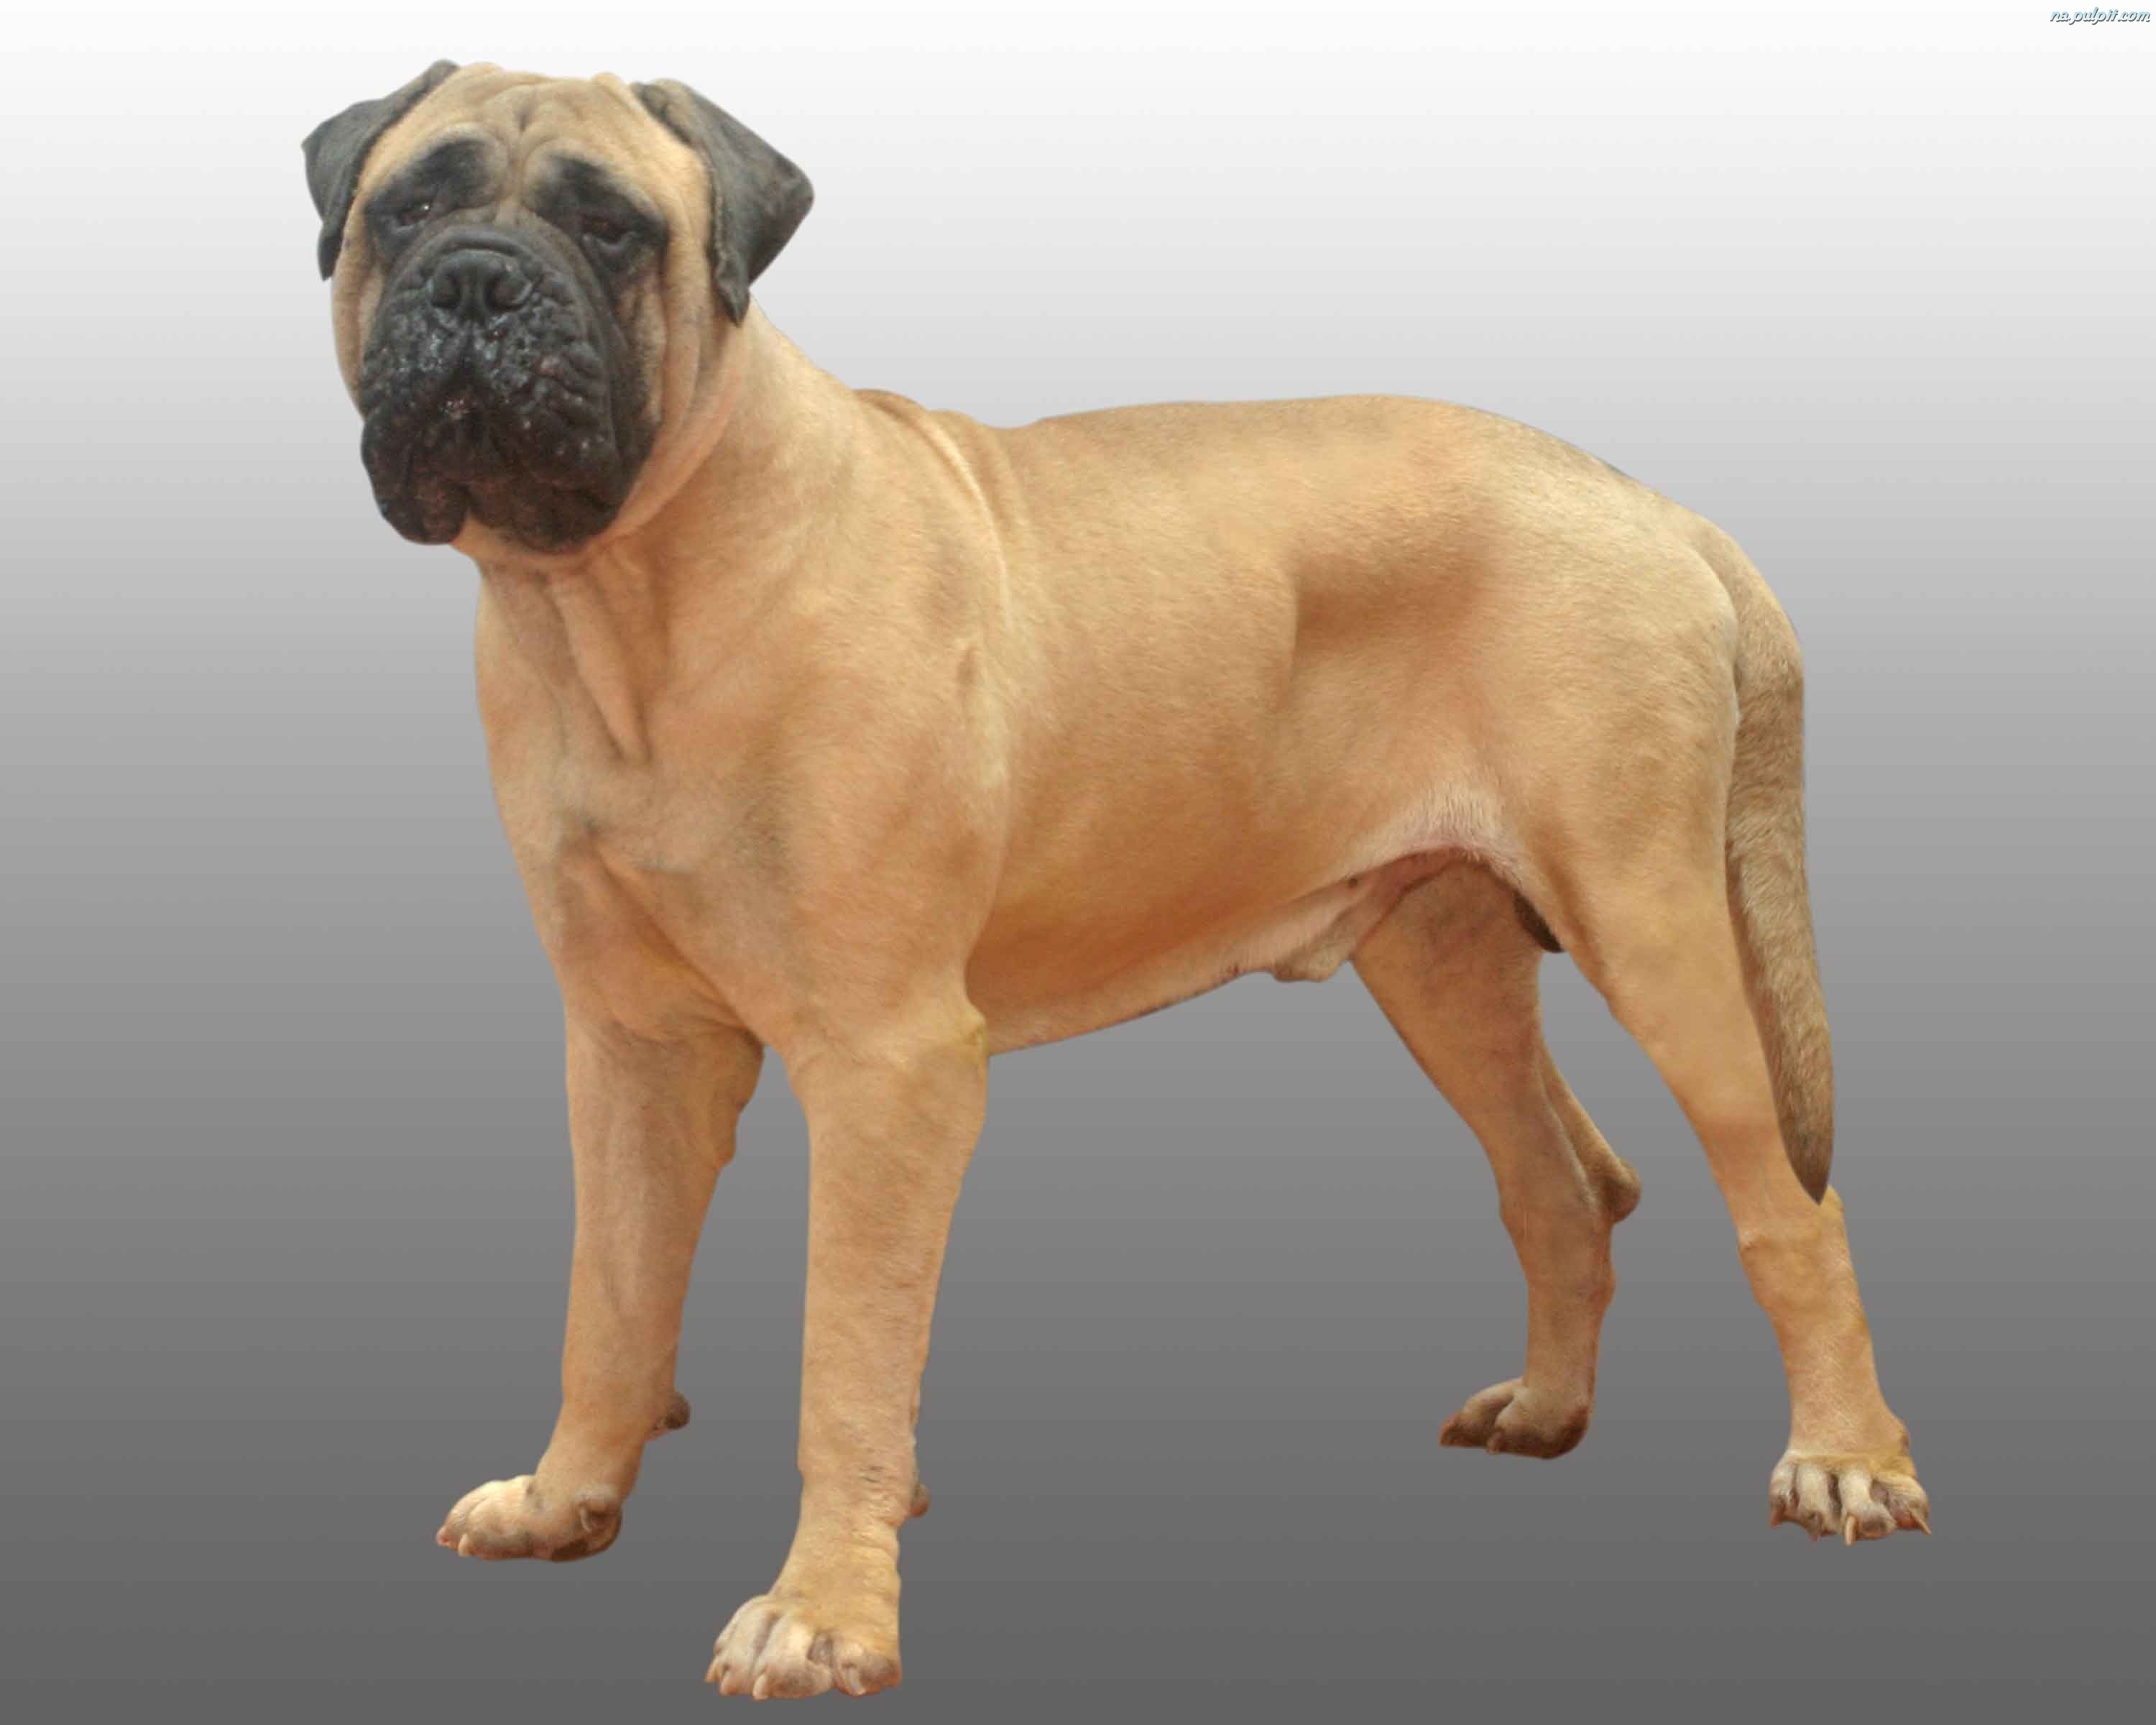 Bullmastiff dog wallpaper